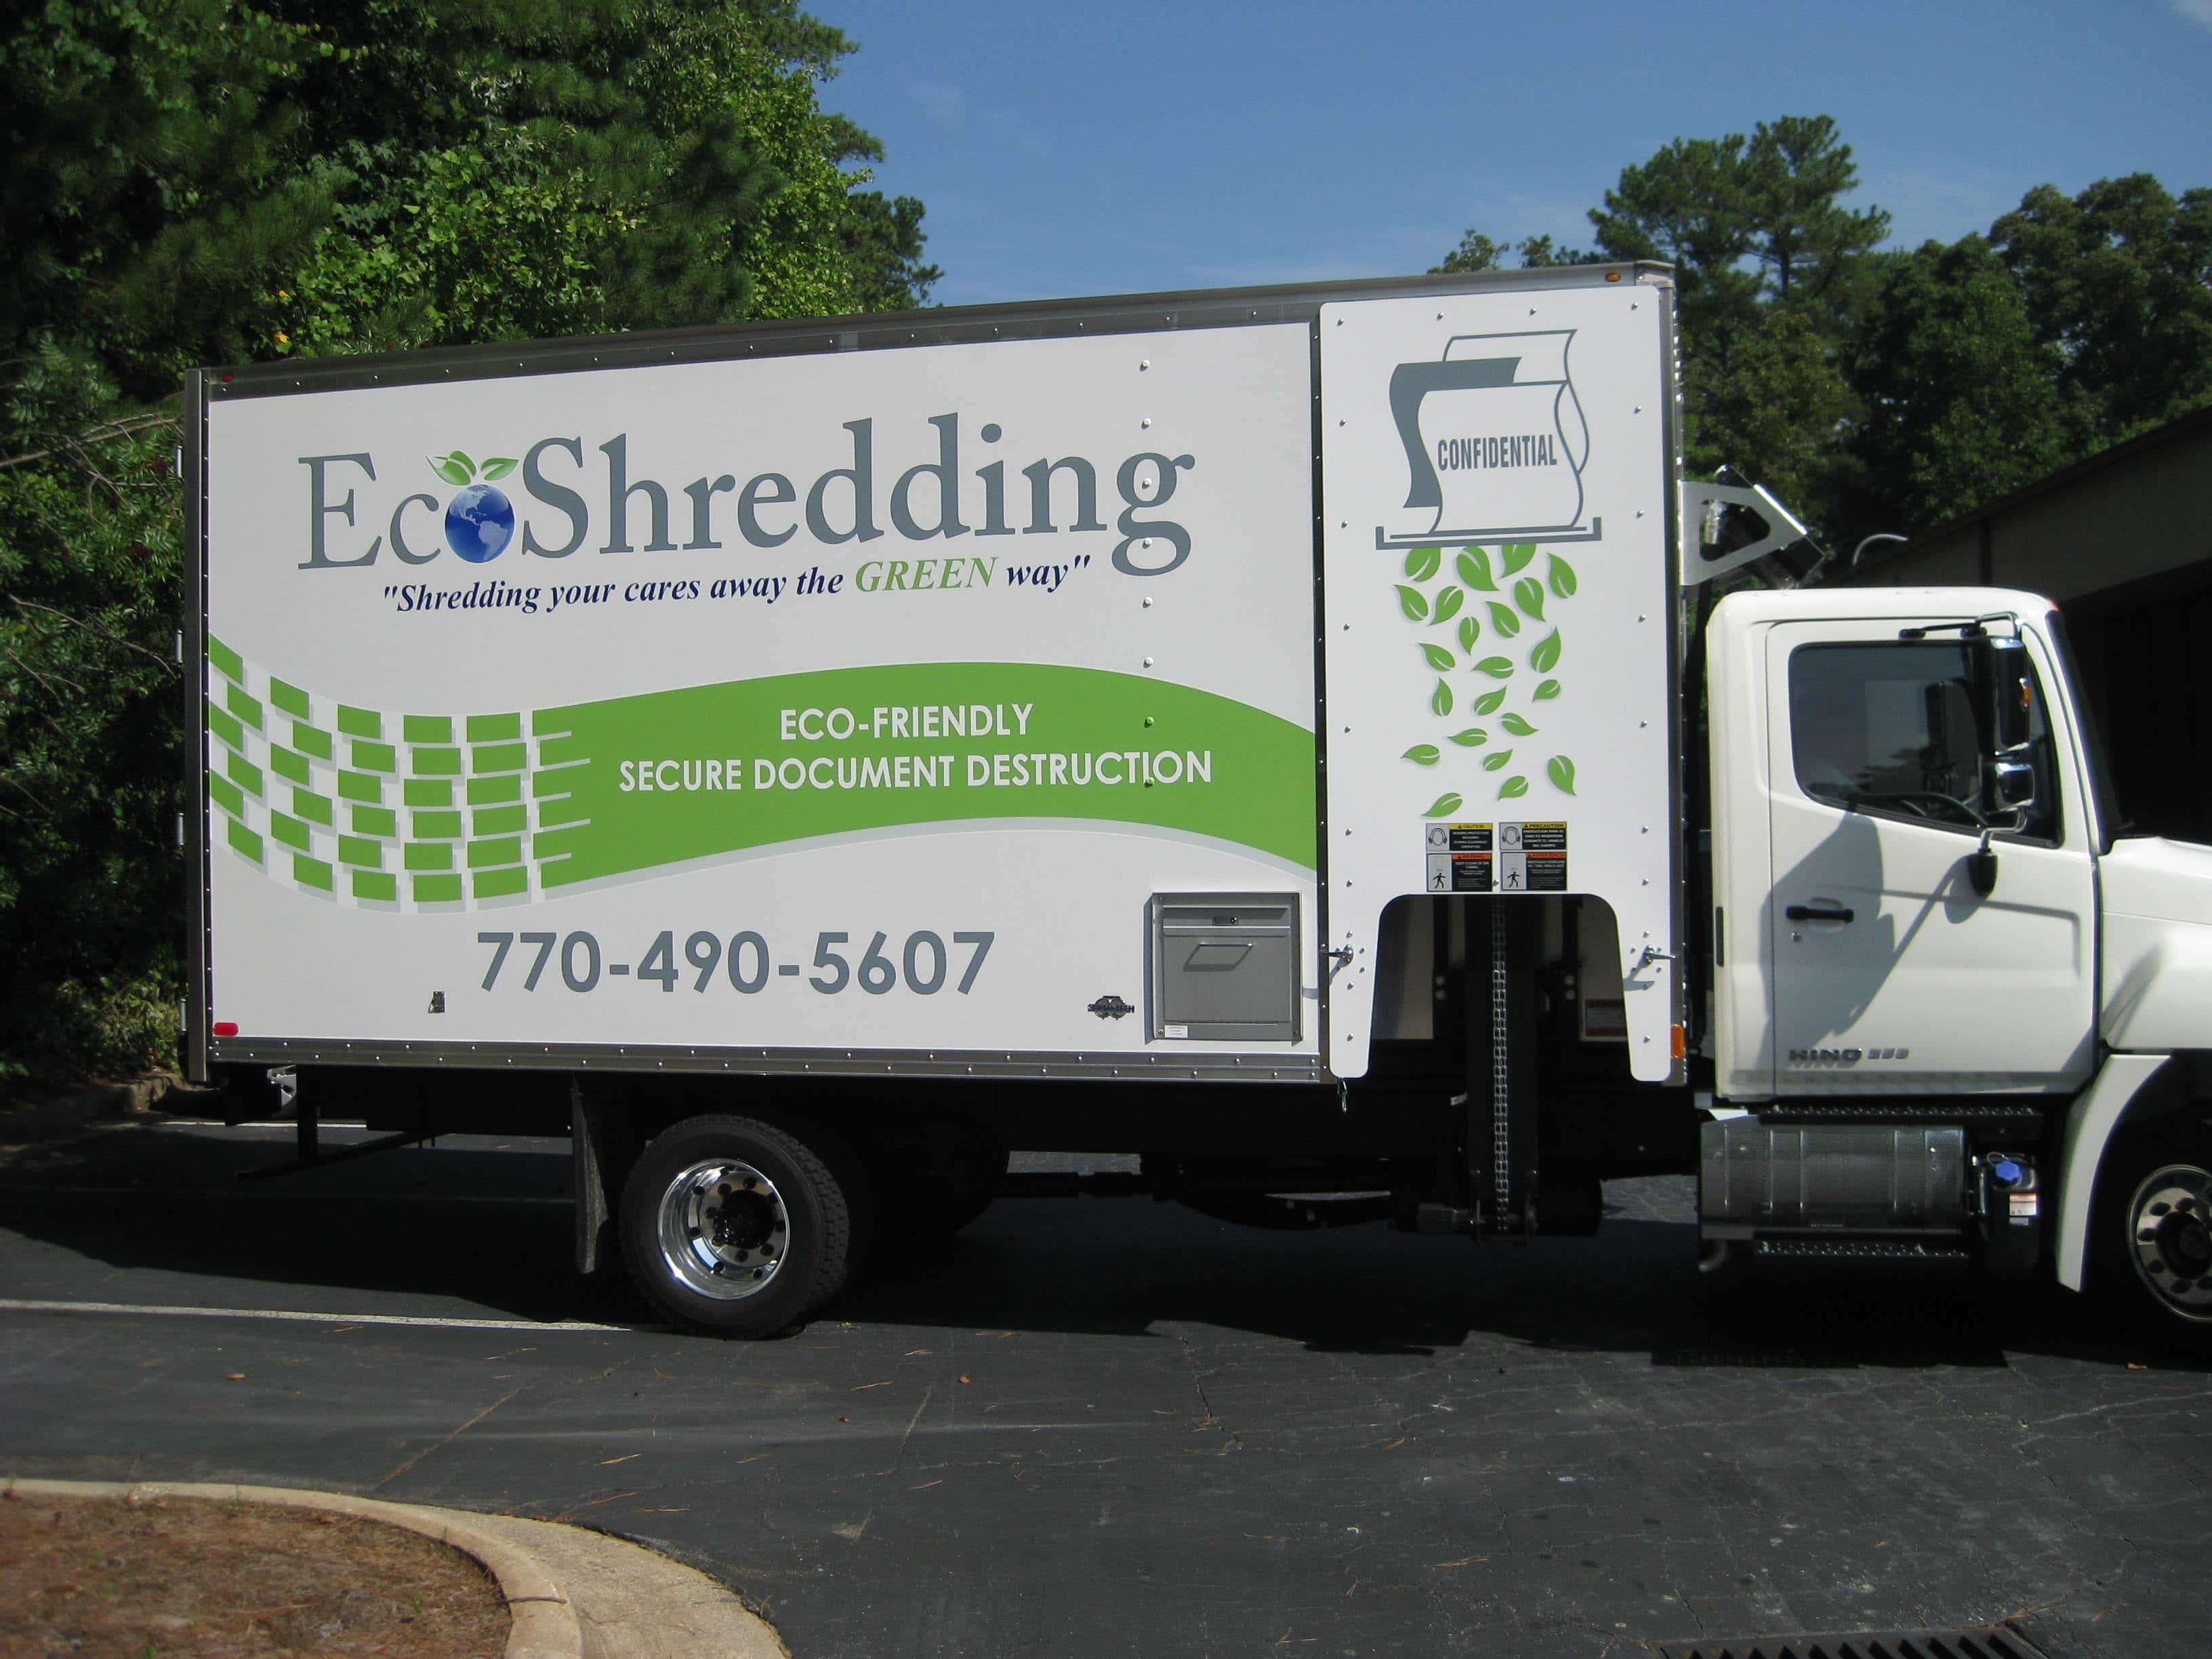 New Ecoshredding truck 3